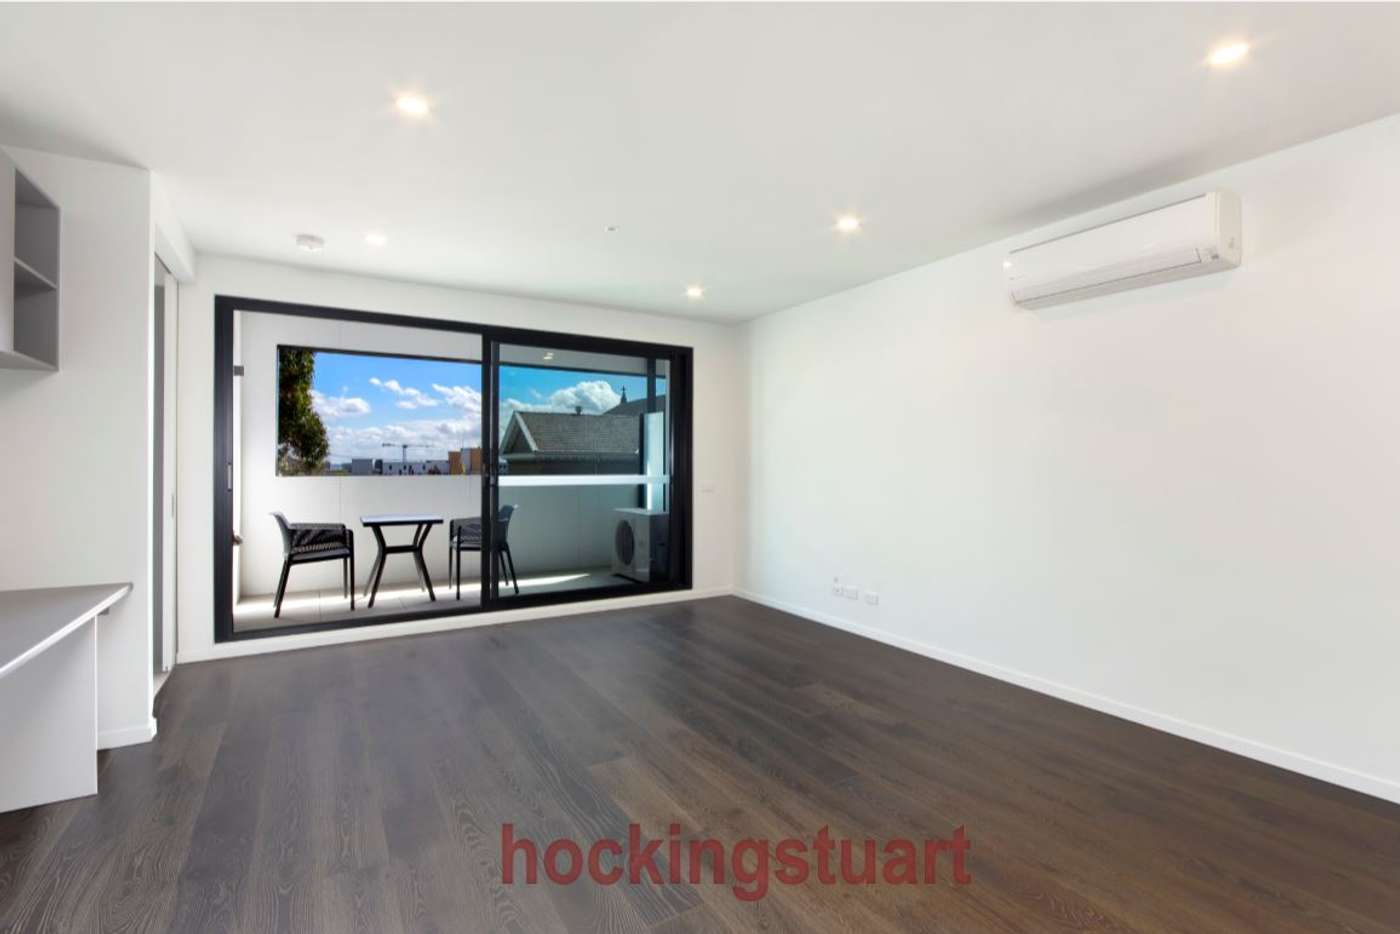 Sixth view of Homely apartment listing, 208/146 Bellerine Street, Geelong VIC 3220